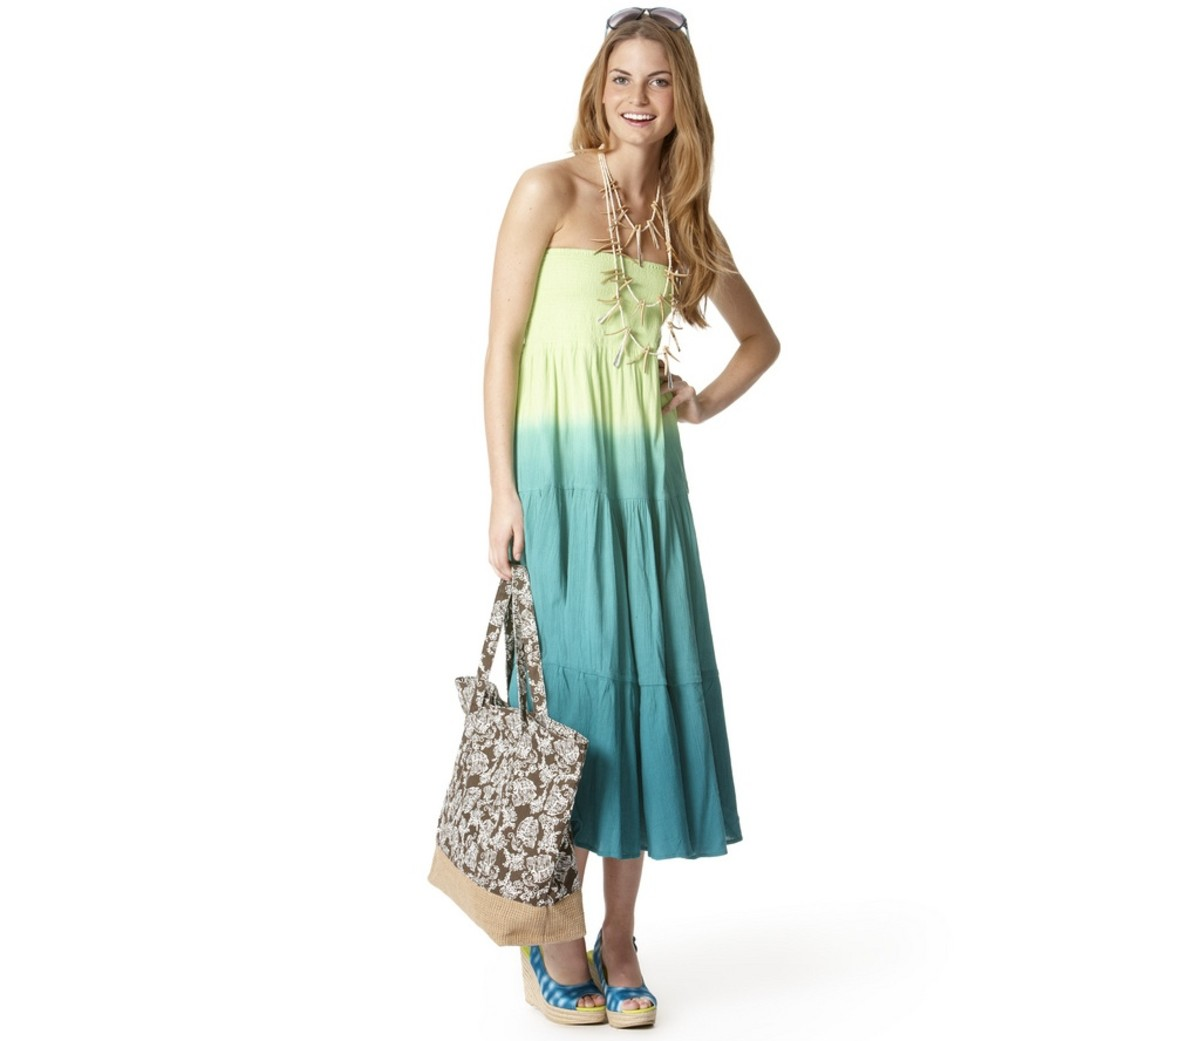 Maxi dress with wedges